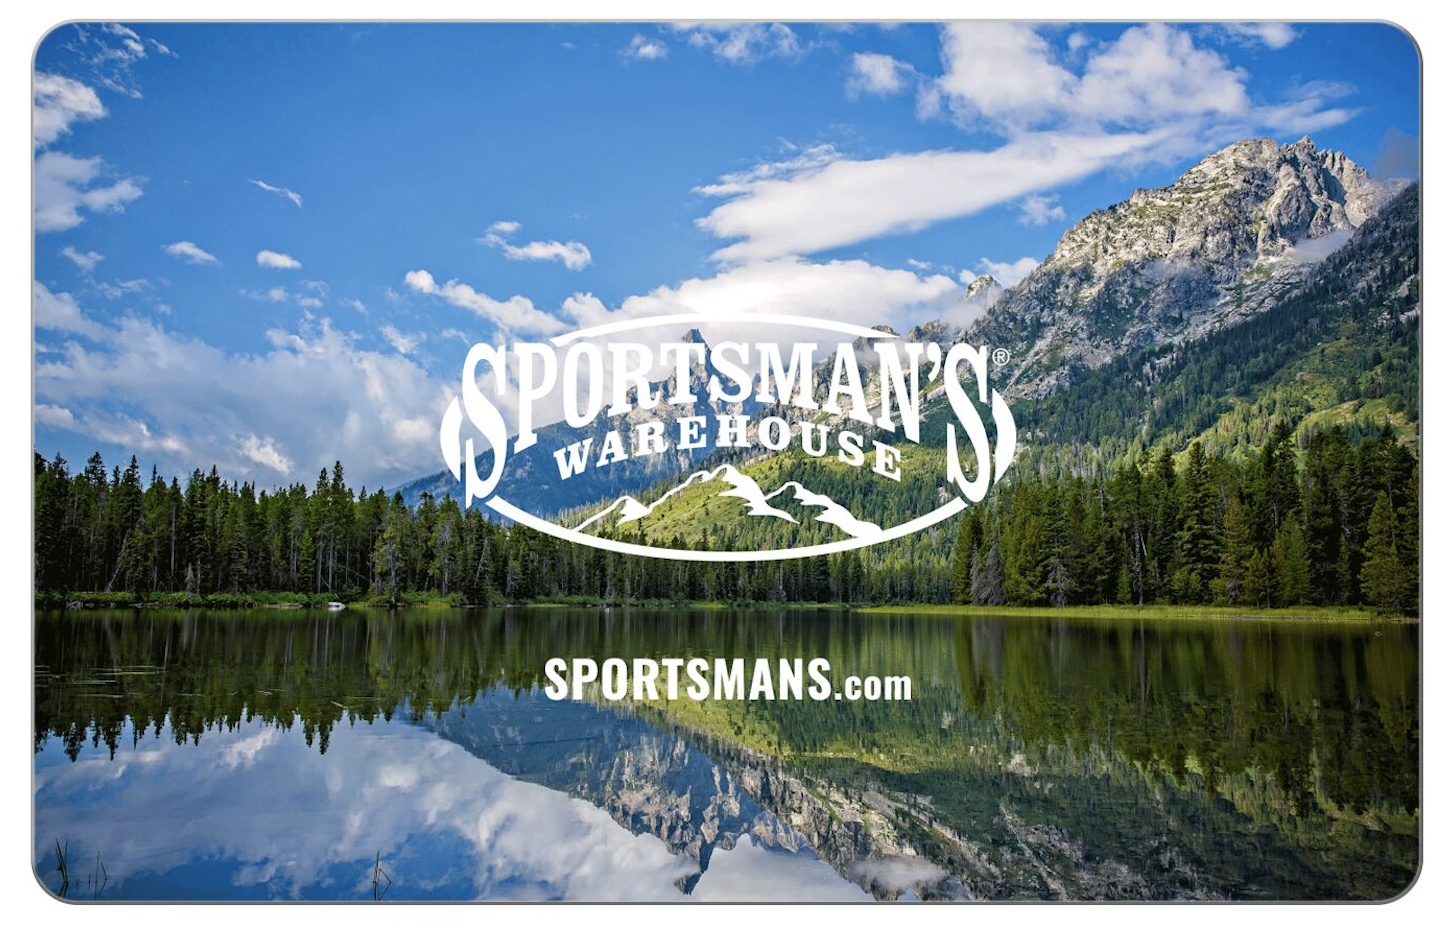 Sportsman s Warehouse Gift Card - 25 50 Or 100 - Fast Email Delivery - $25.00